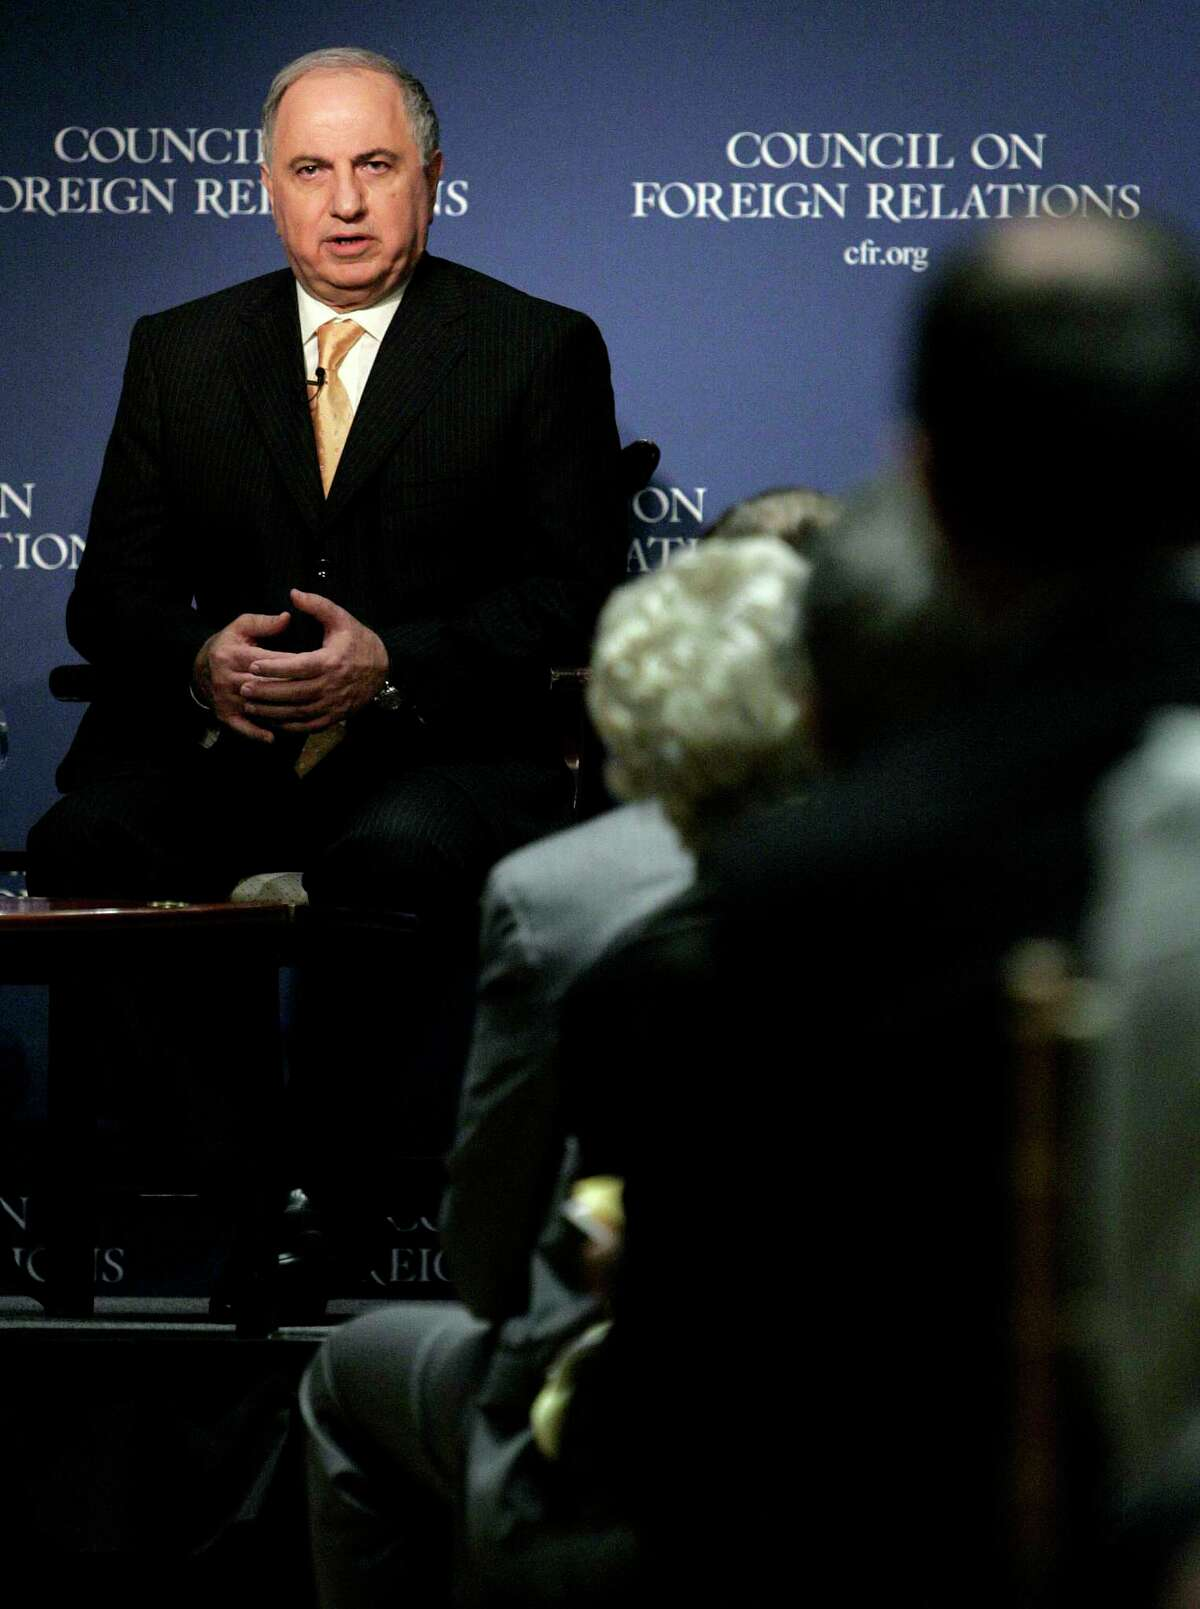 In this Friday Nov. 11, 2005, file photo, Iraqi Deputy Prime Minister Ahmad Chalabi speaks at the Council on Foreign Relations, in New York. Iraqi state TV says Chalabi, a prominent politician who strongly advocated the 2003 U.S.-led invasion to overthrow Saddam Hussein, has died of a heart attack.